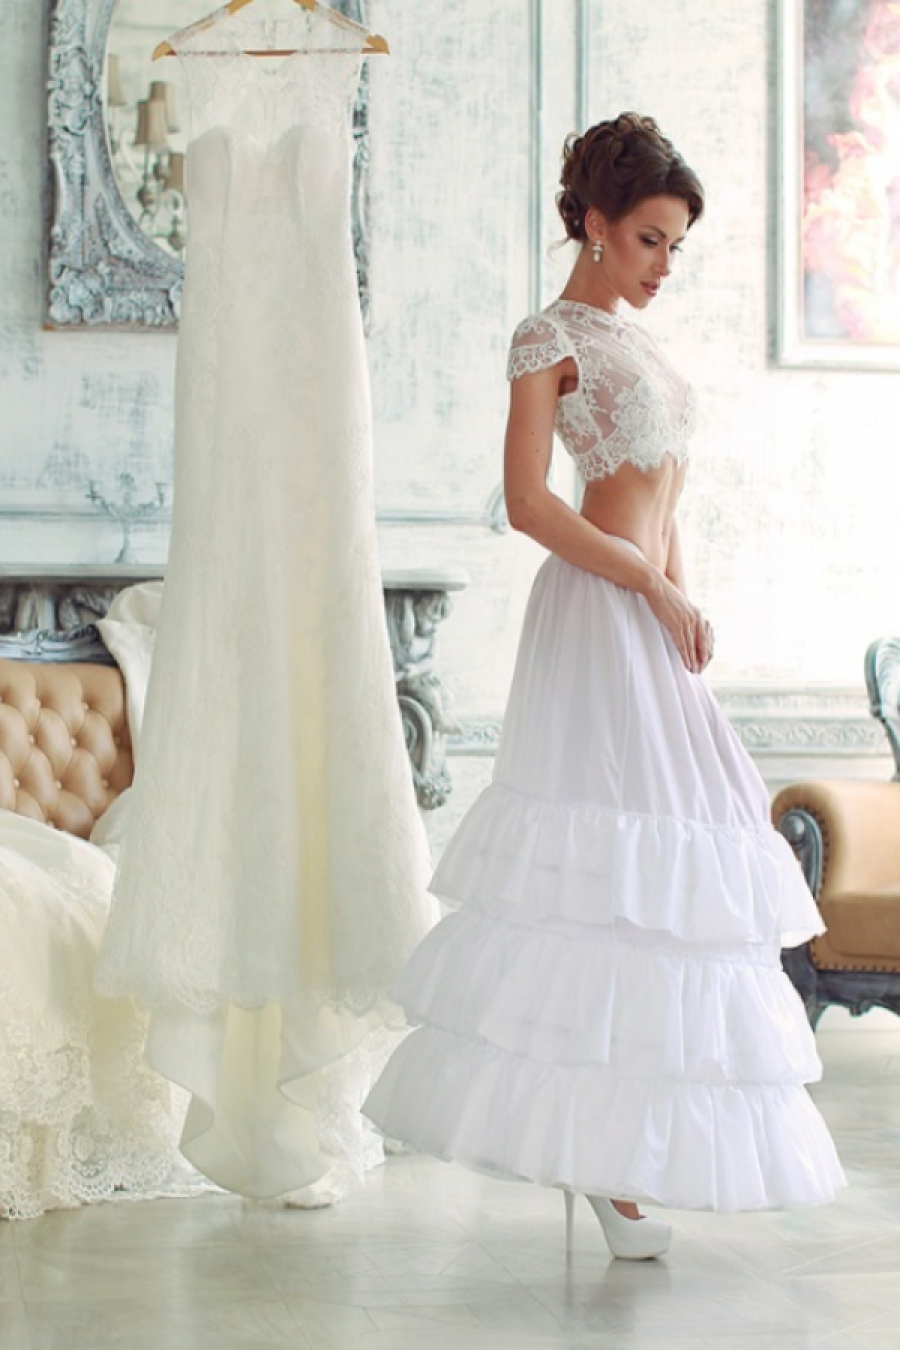 Top Wedding Dress Styles Proposed by Wedding Dress Designers